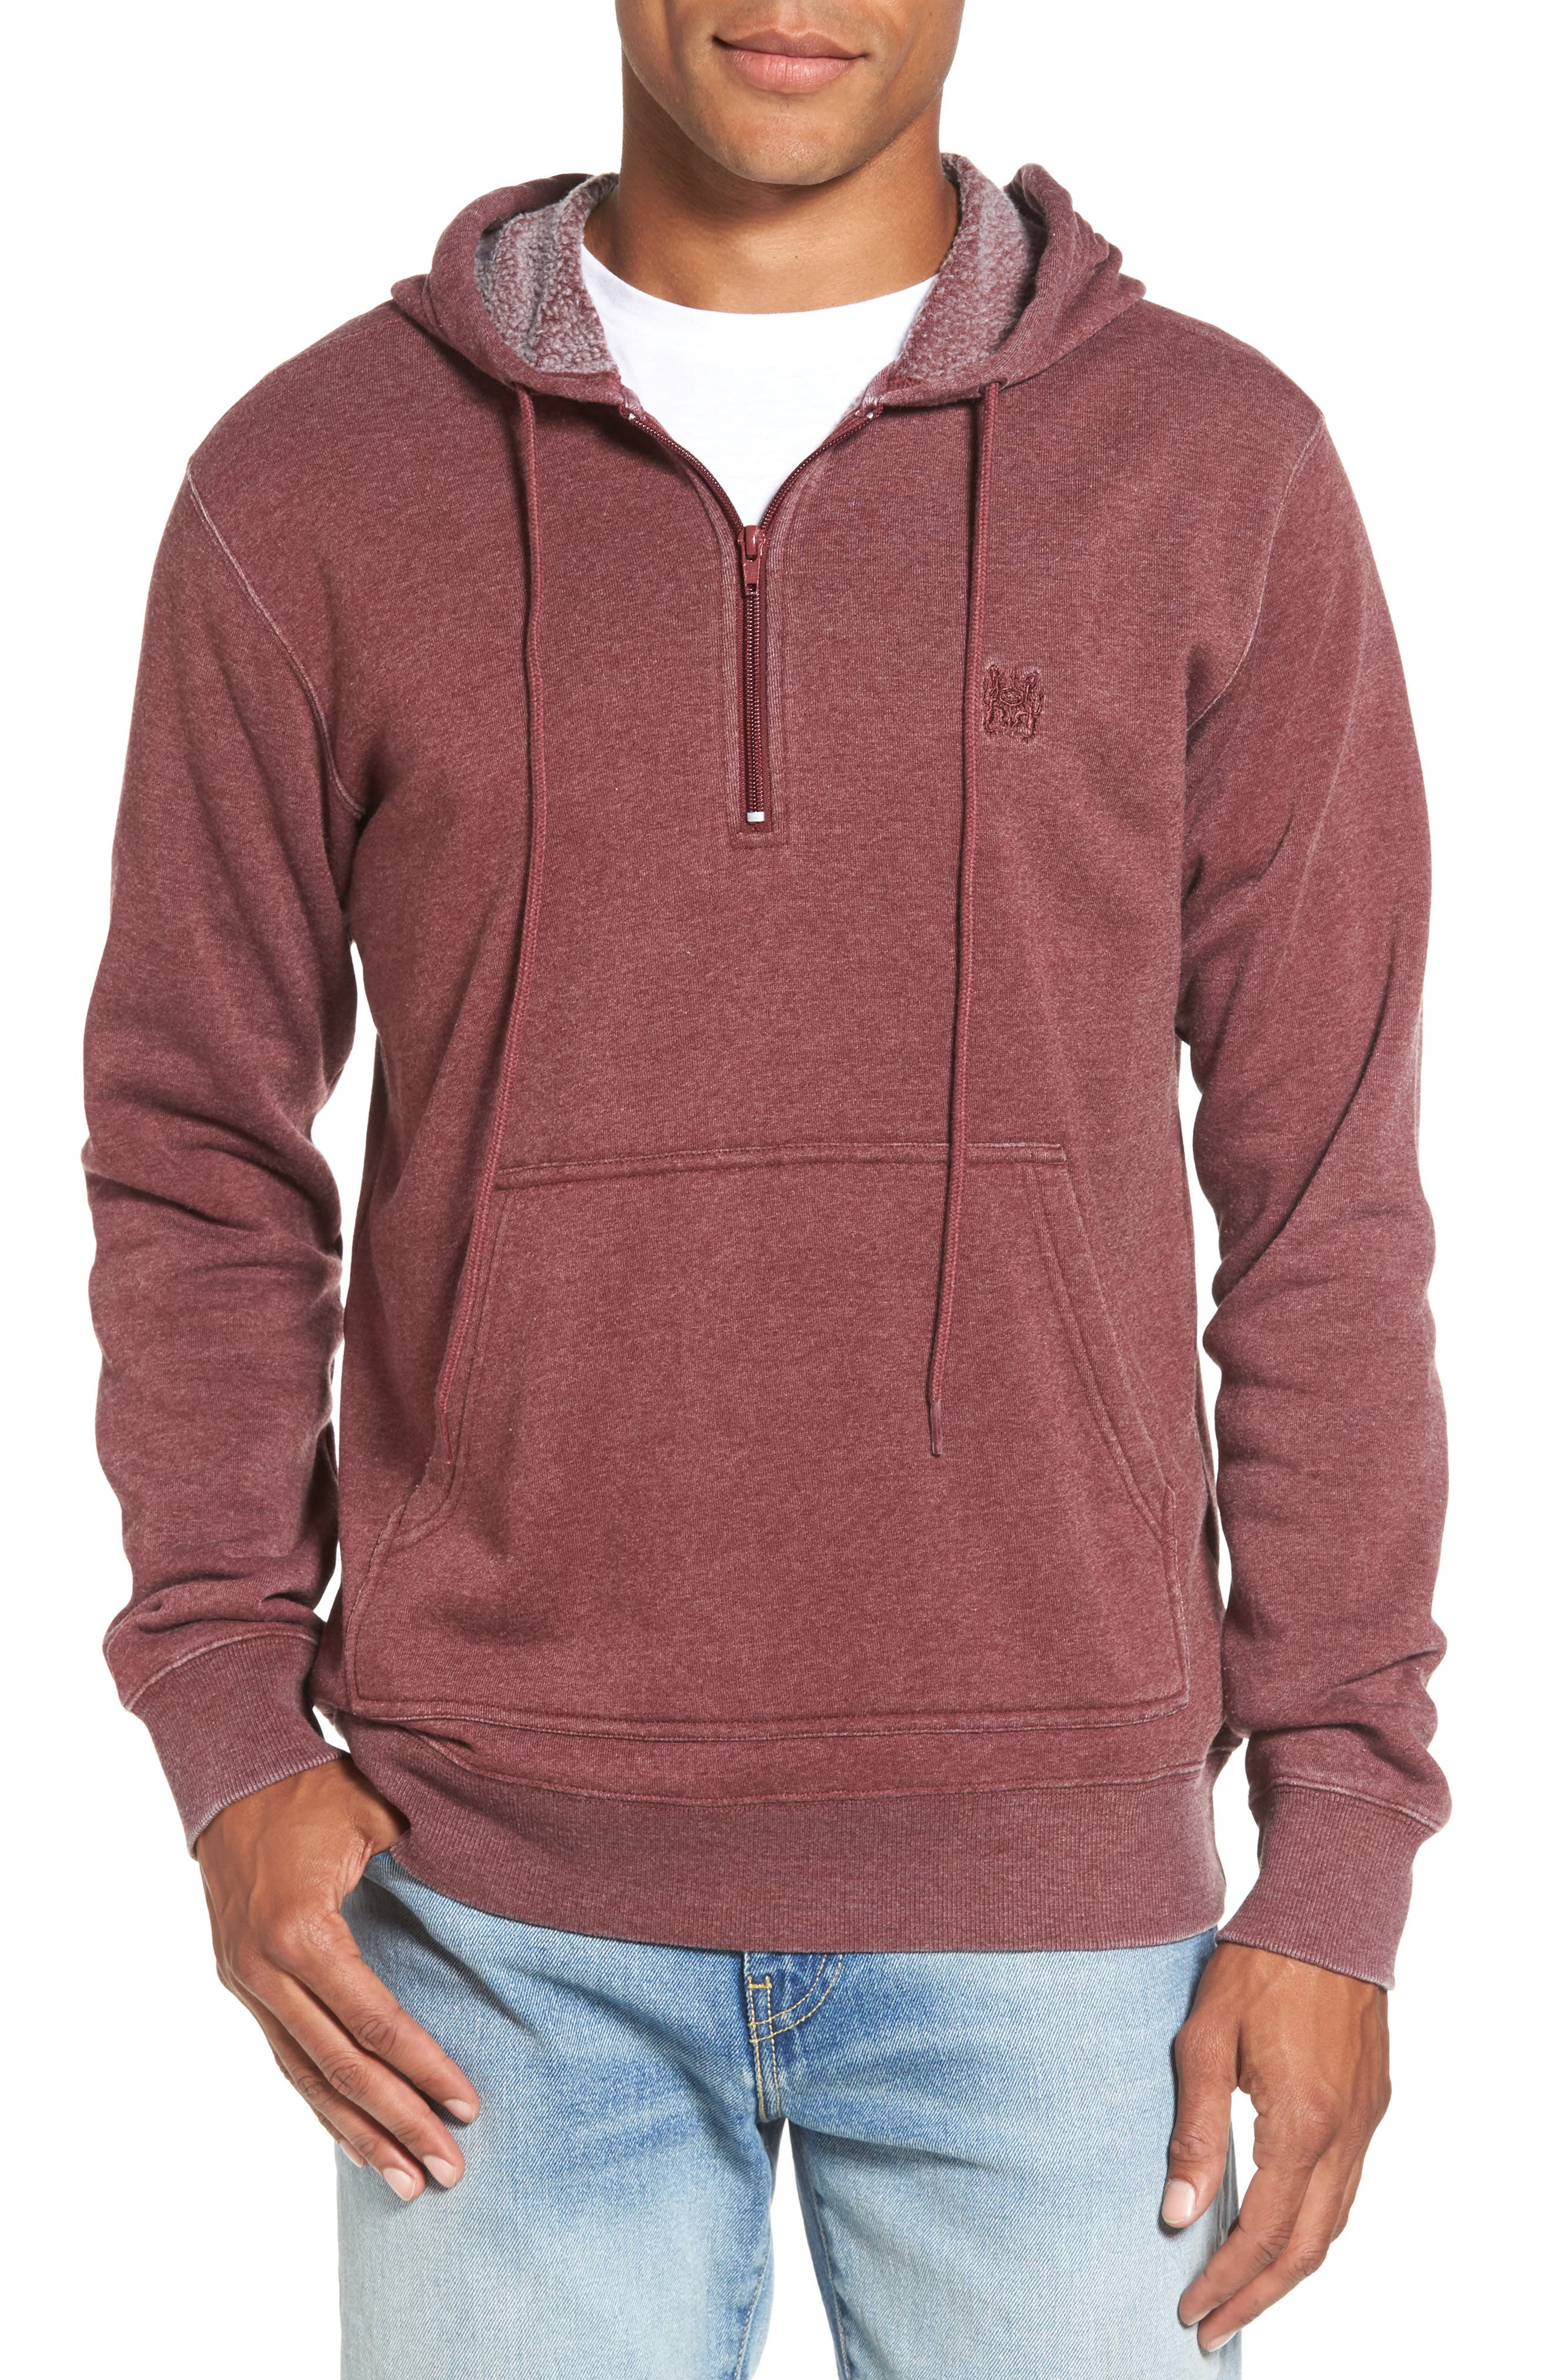 Sunwash Hoodie,                             Main thumbnail 1, color,                             Tawny Port